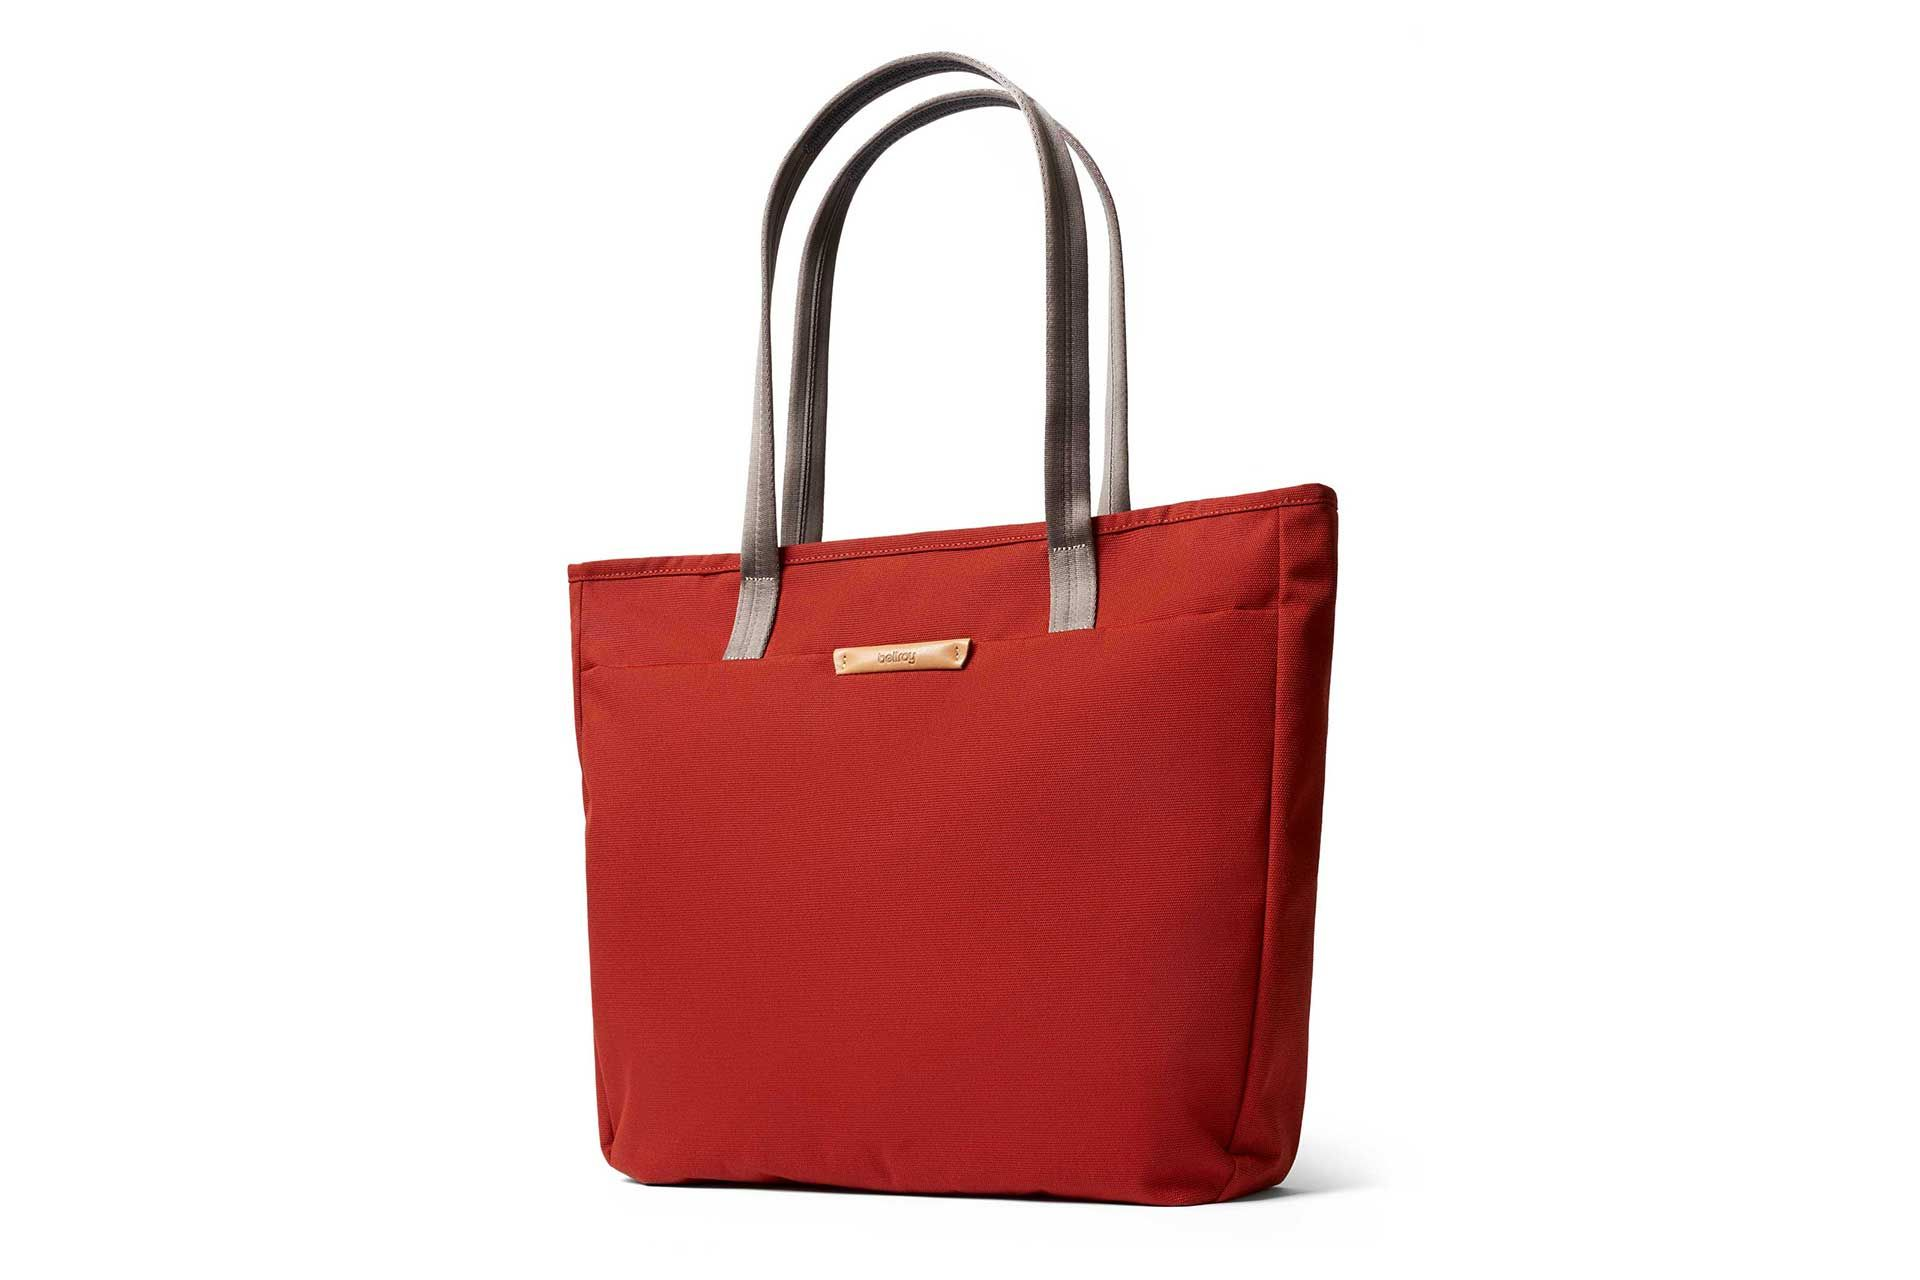 When You Need To Carry A Little Extra The Tokyo Tote Will Surprise You With Its Unique Pocket System Generous Capacity And Laptop Tote Bag Laptop Tote Tote